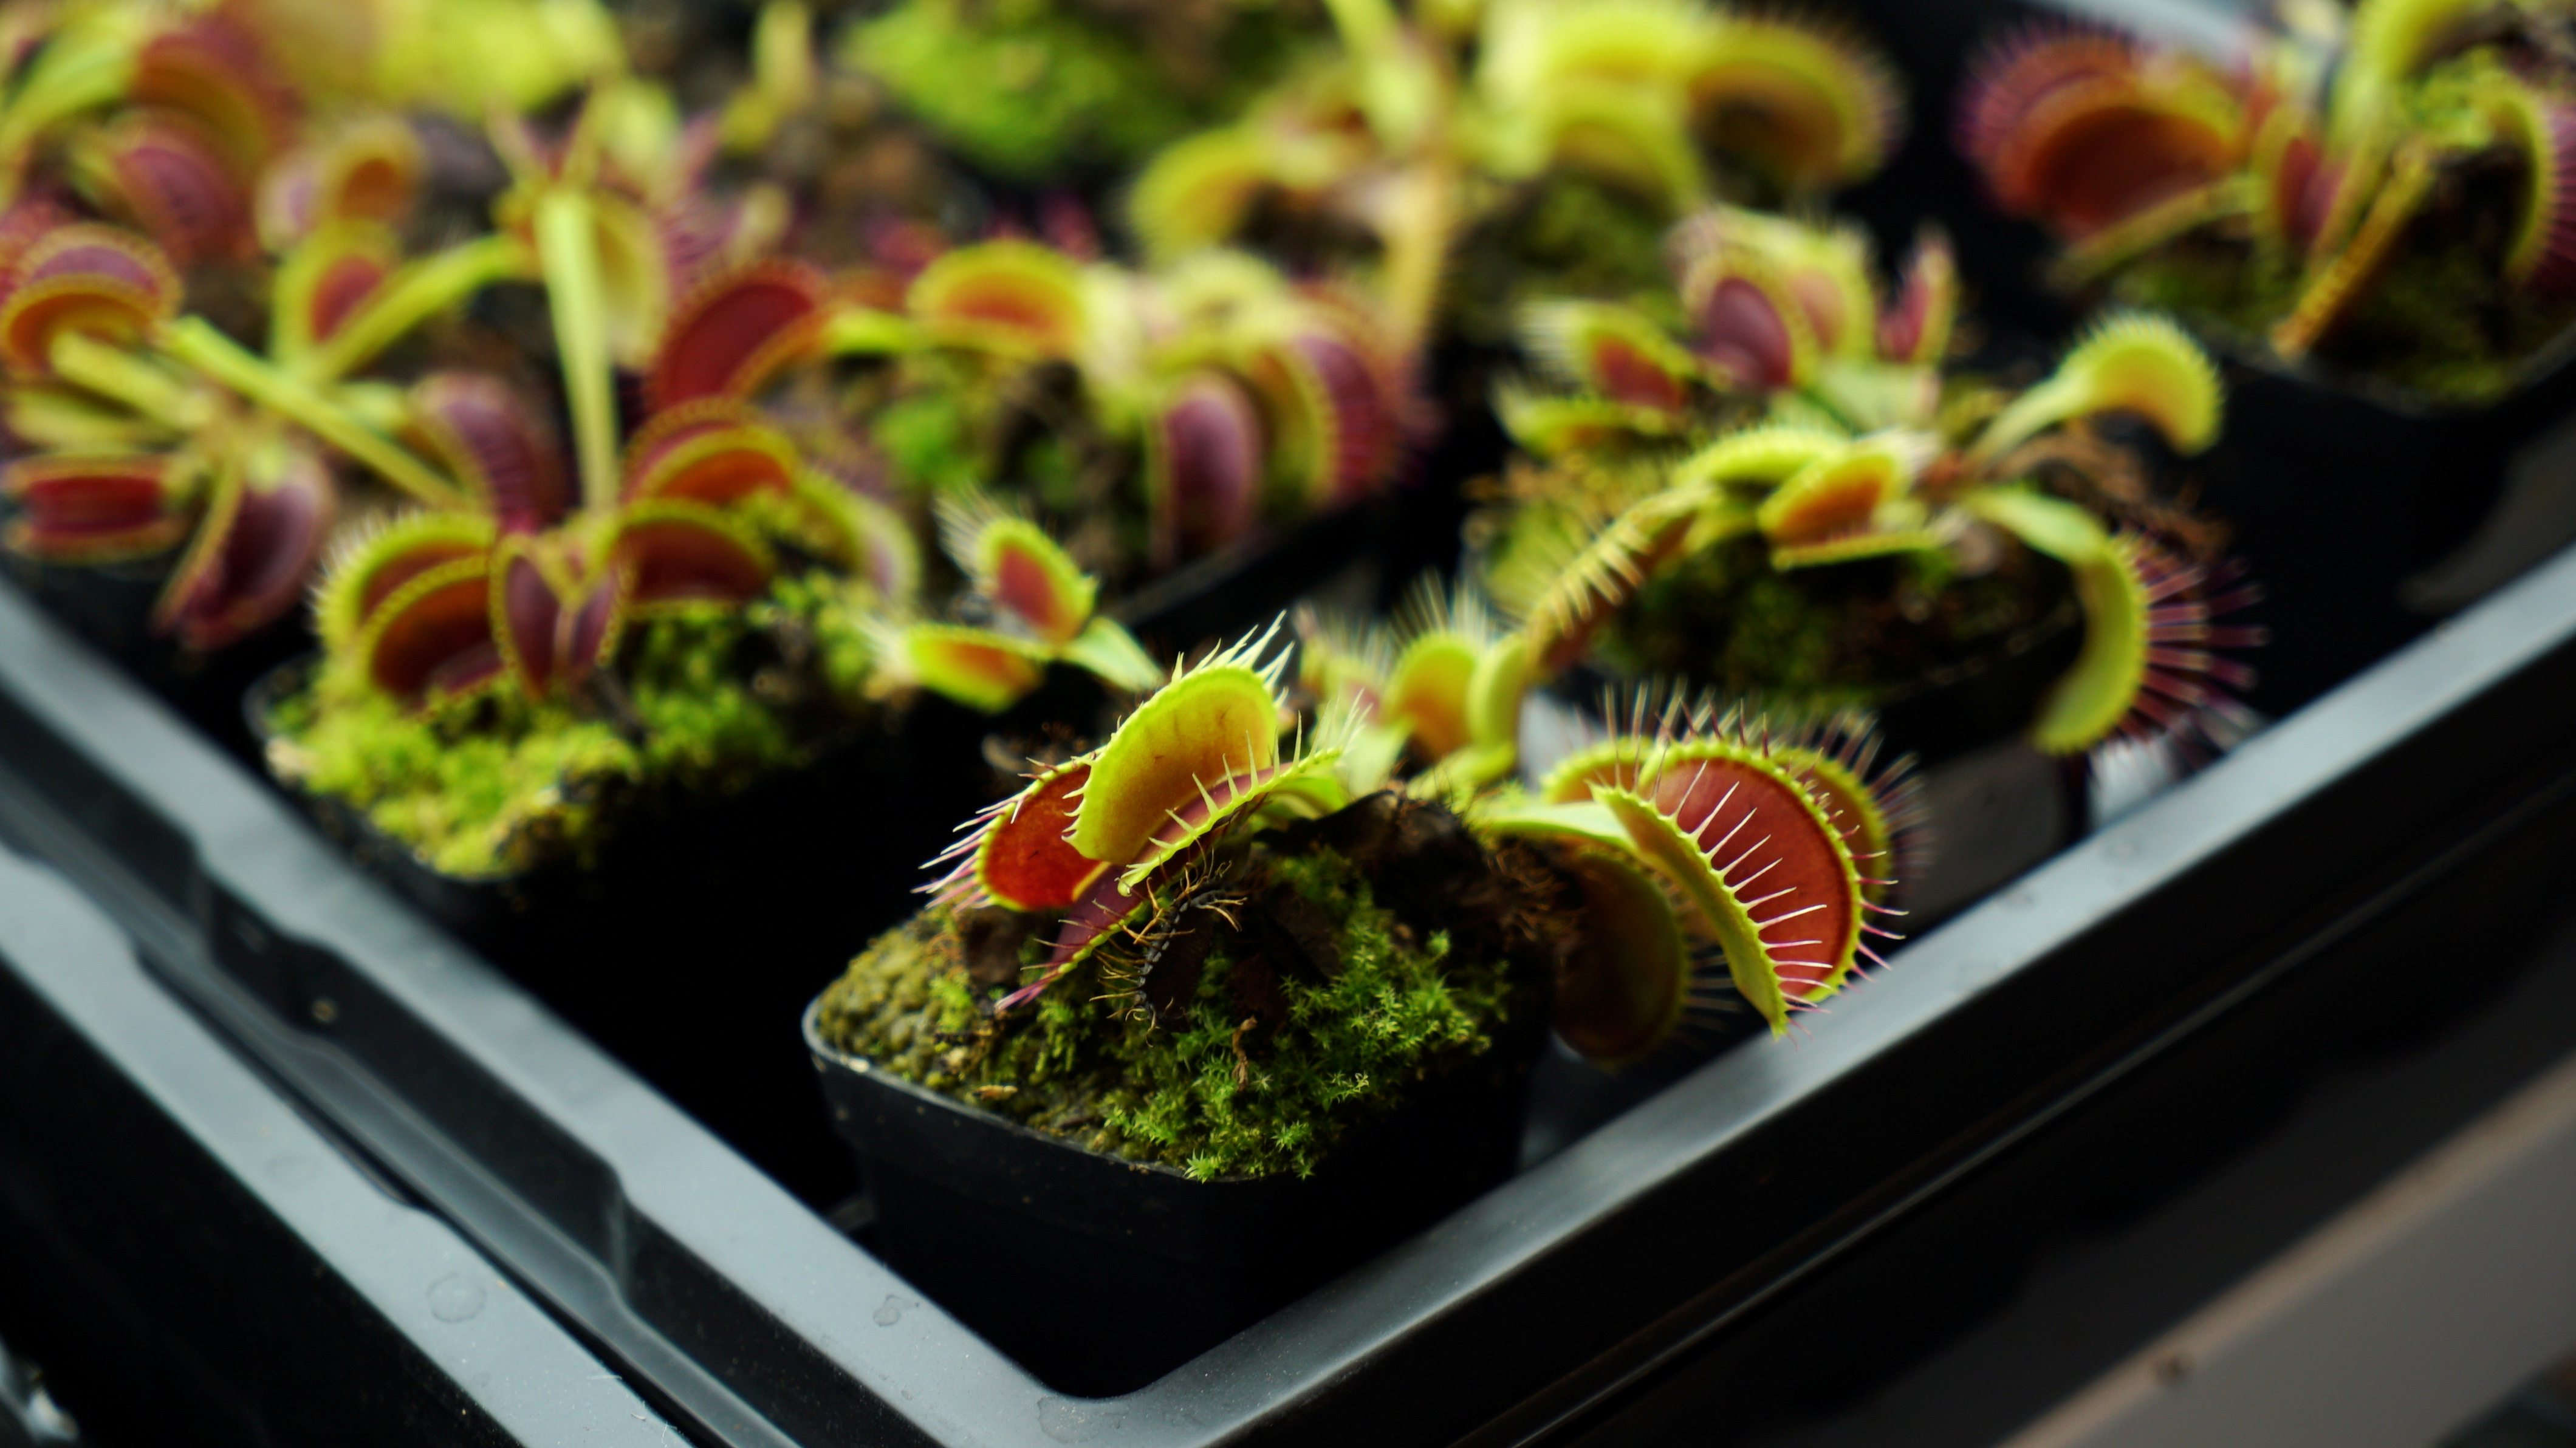 Venus flytraps are seen in a lab at Nanyang Technological University in Singapore April 27, 2021. Picture taken April 27, 2021. REUTERS/Joseph Campbell